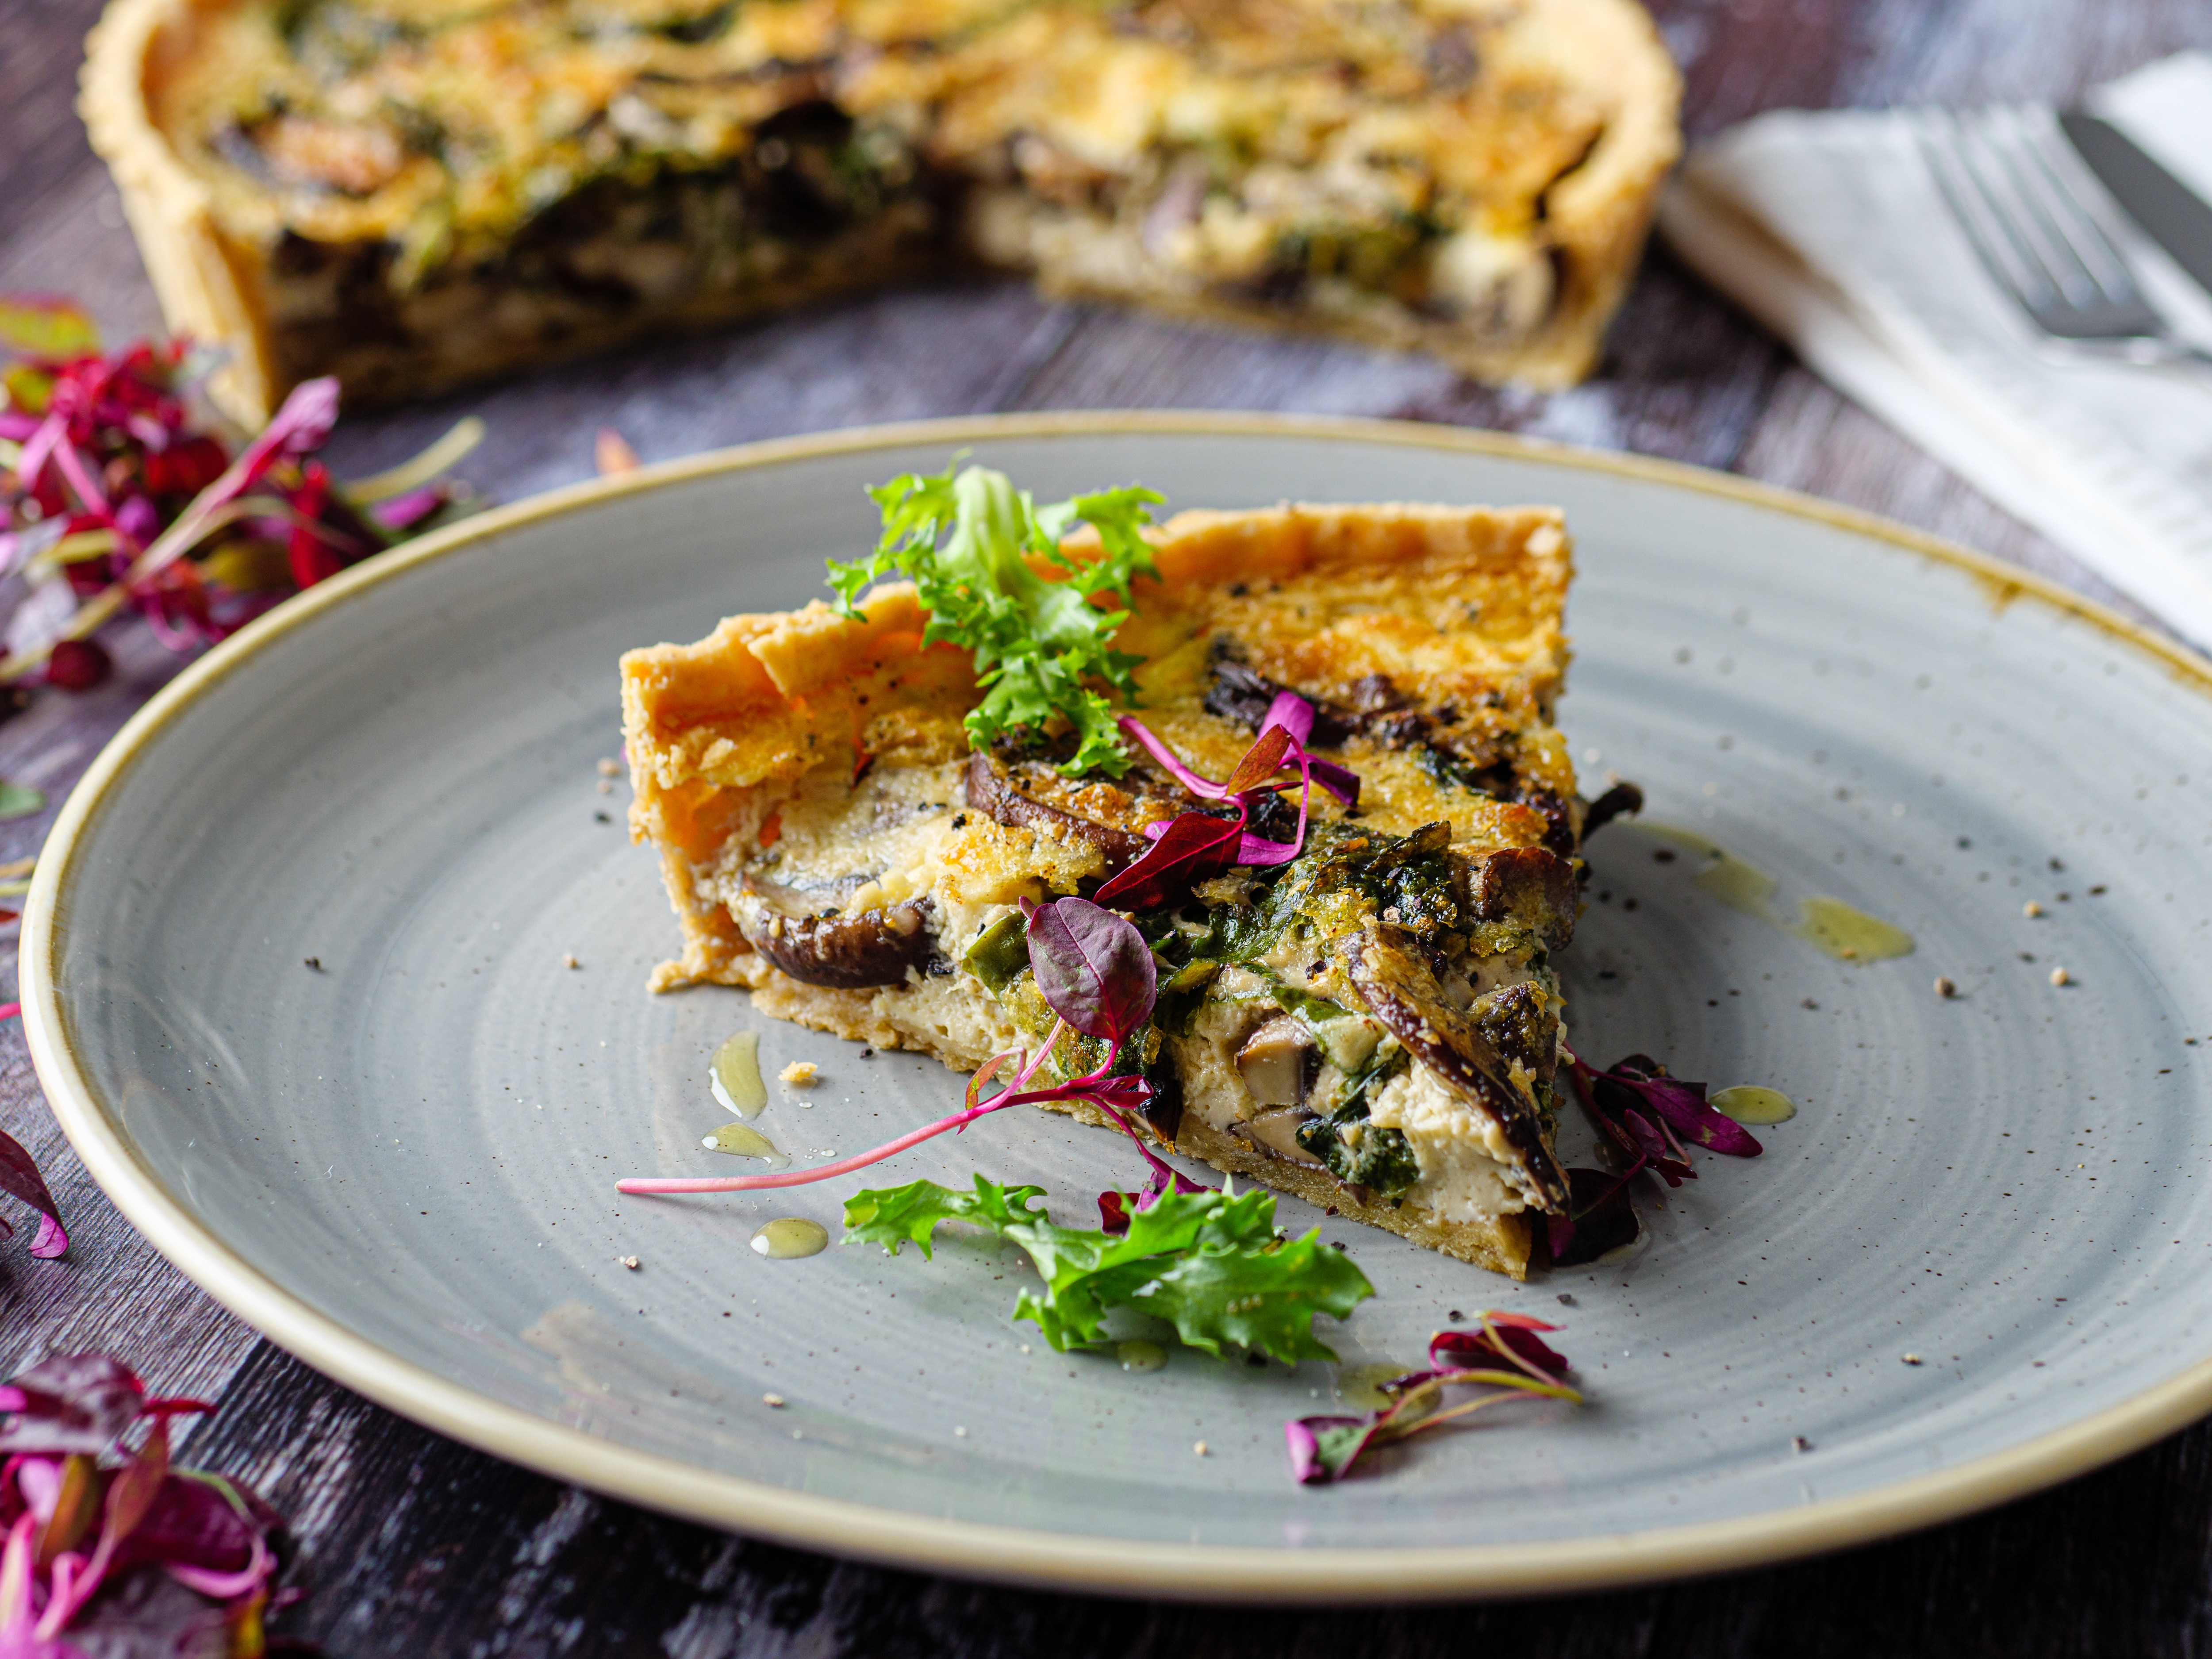 Garlic And Mushroom Quiche